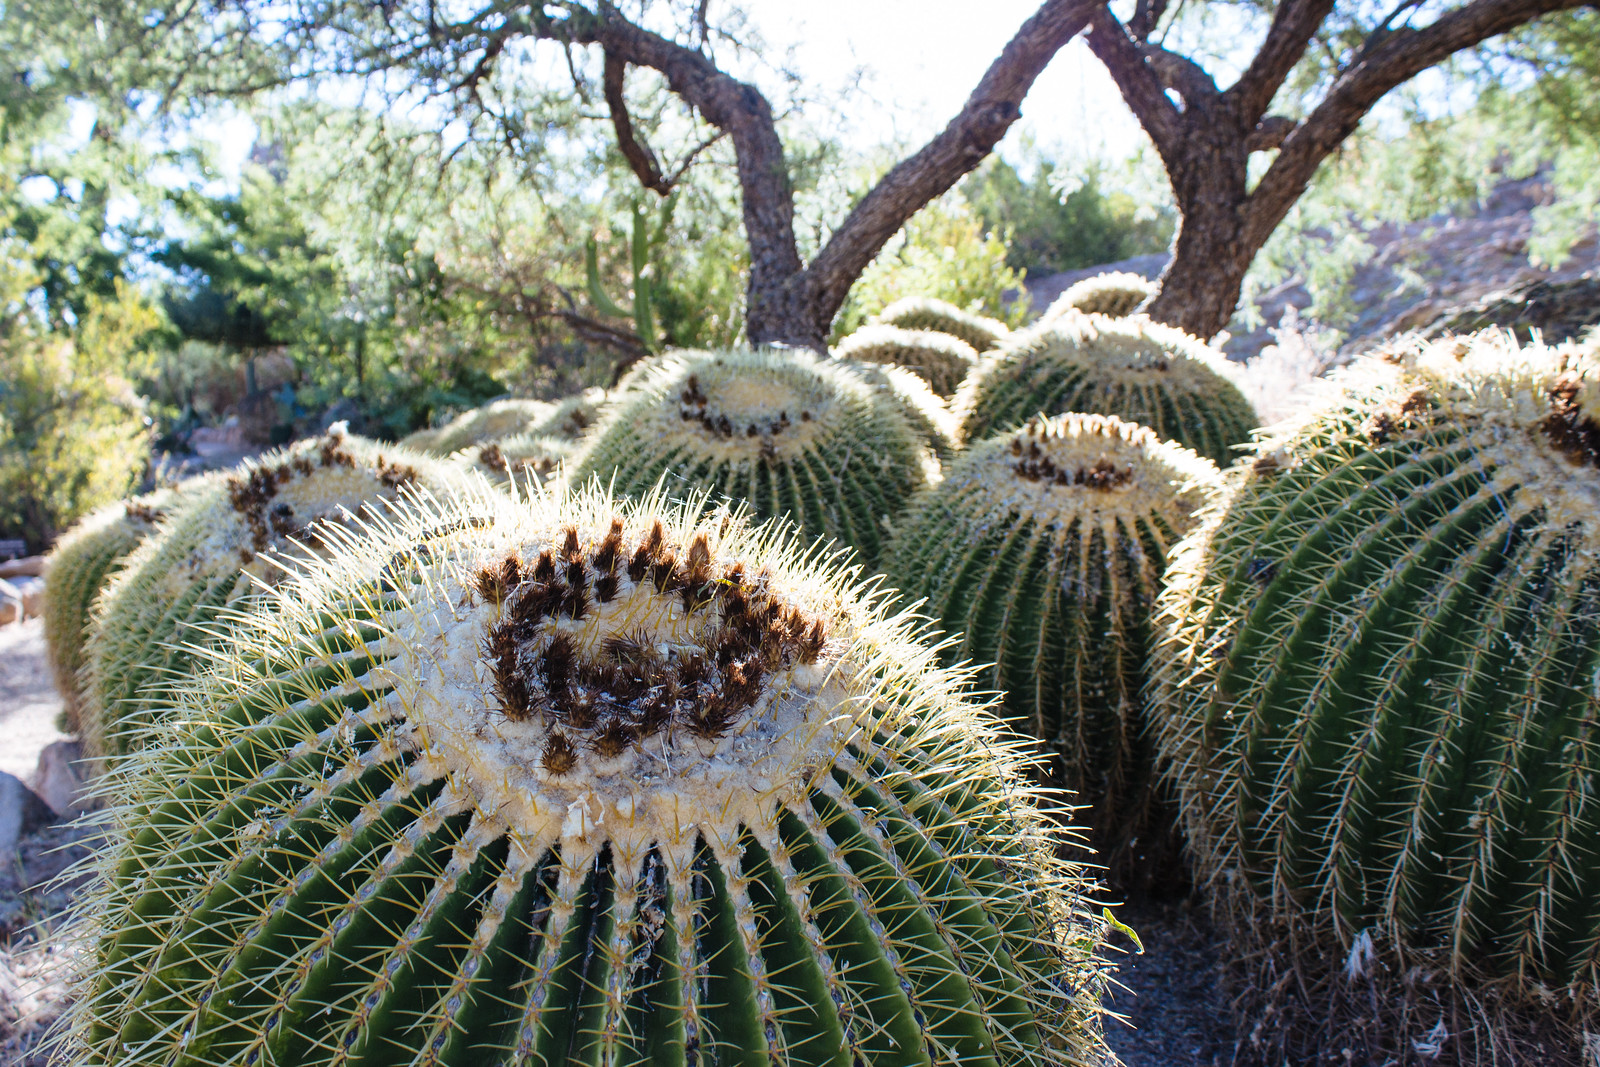 Group of half a dozen short, round barrel cactus